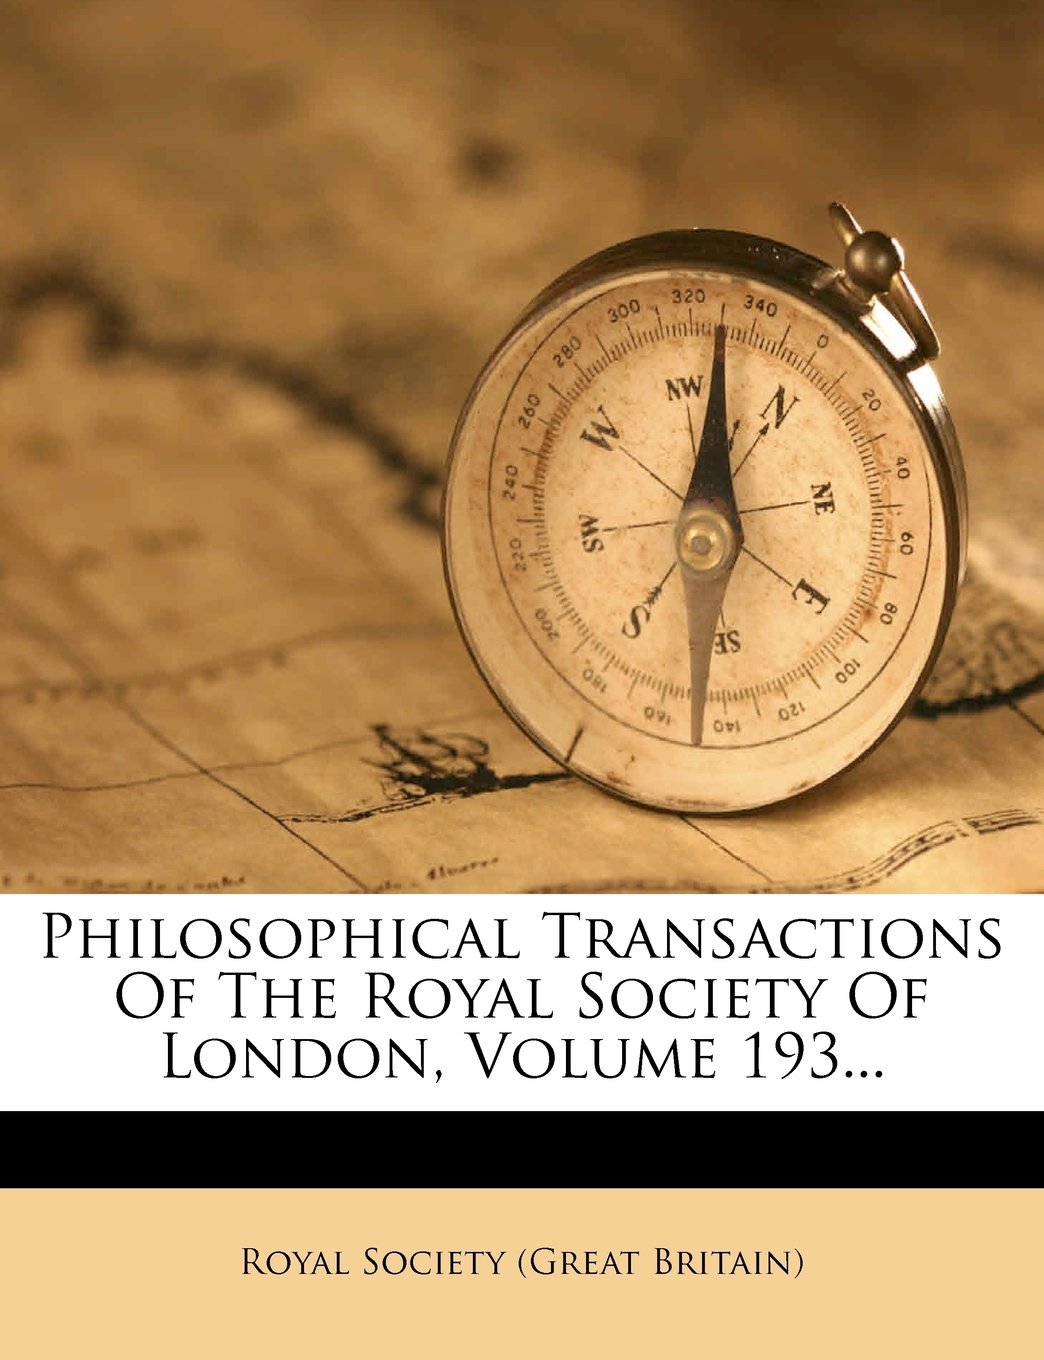 Philosophical Transactions Of The Royal Society Of London, Volume 193... PDF